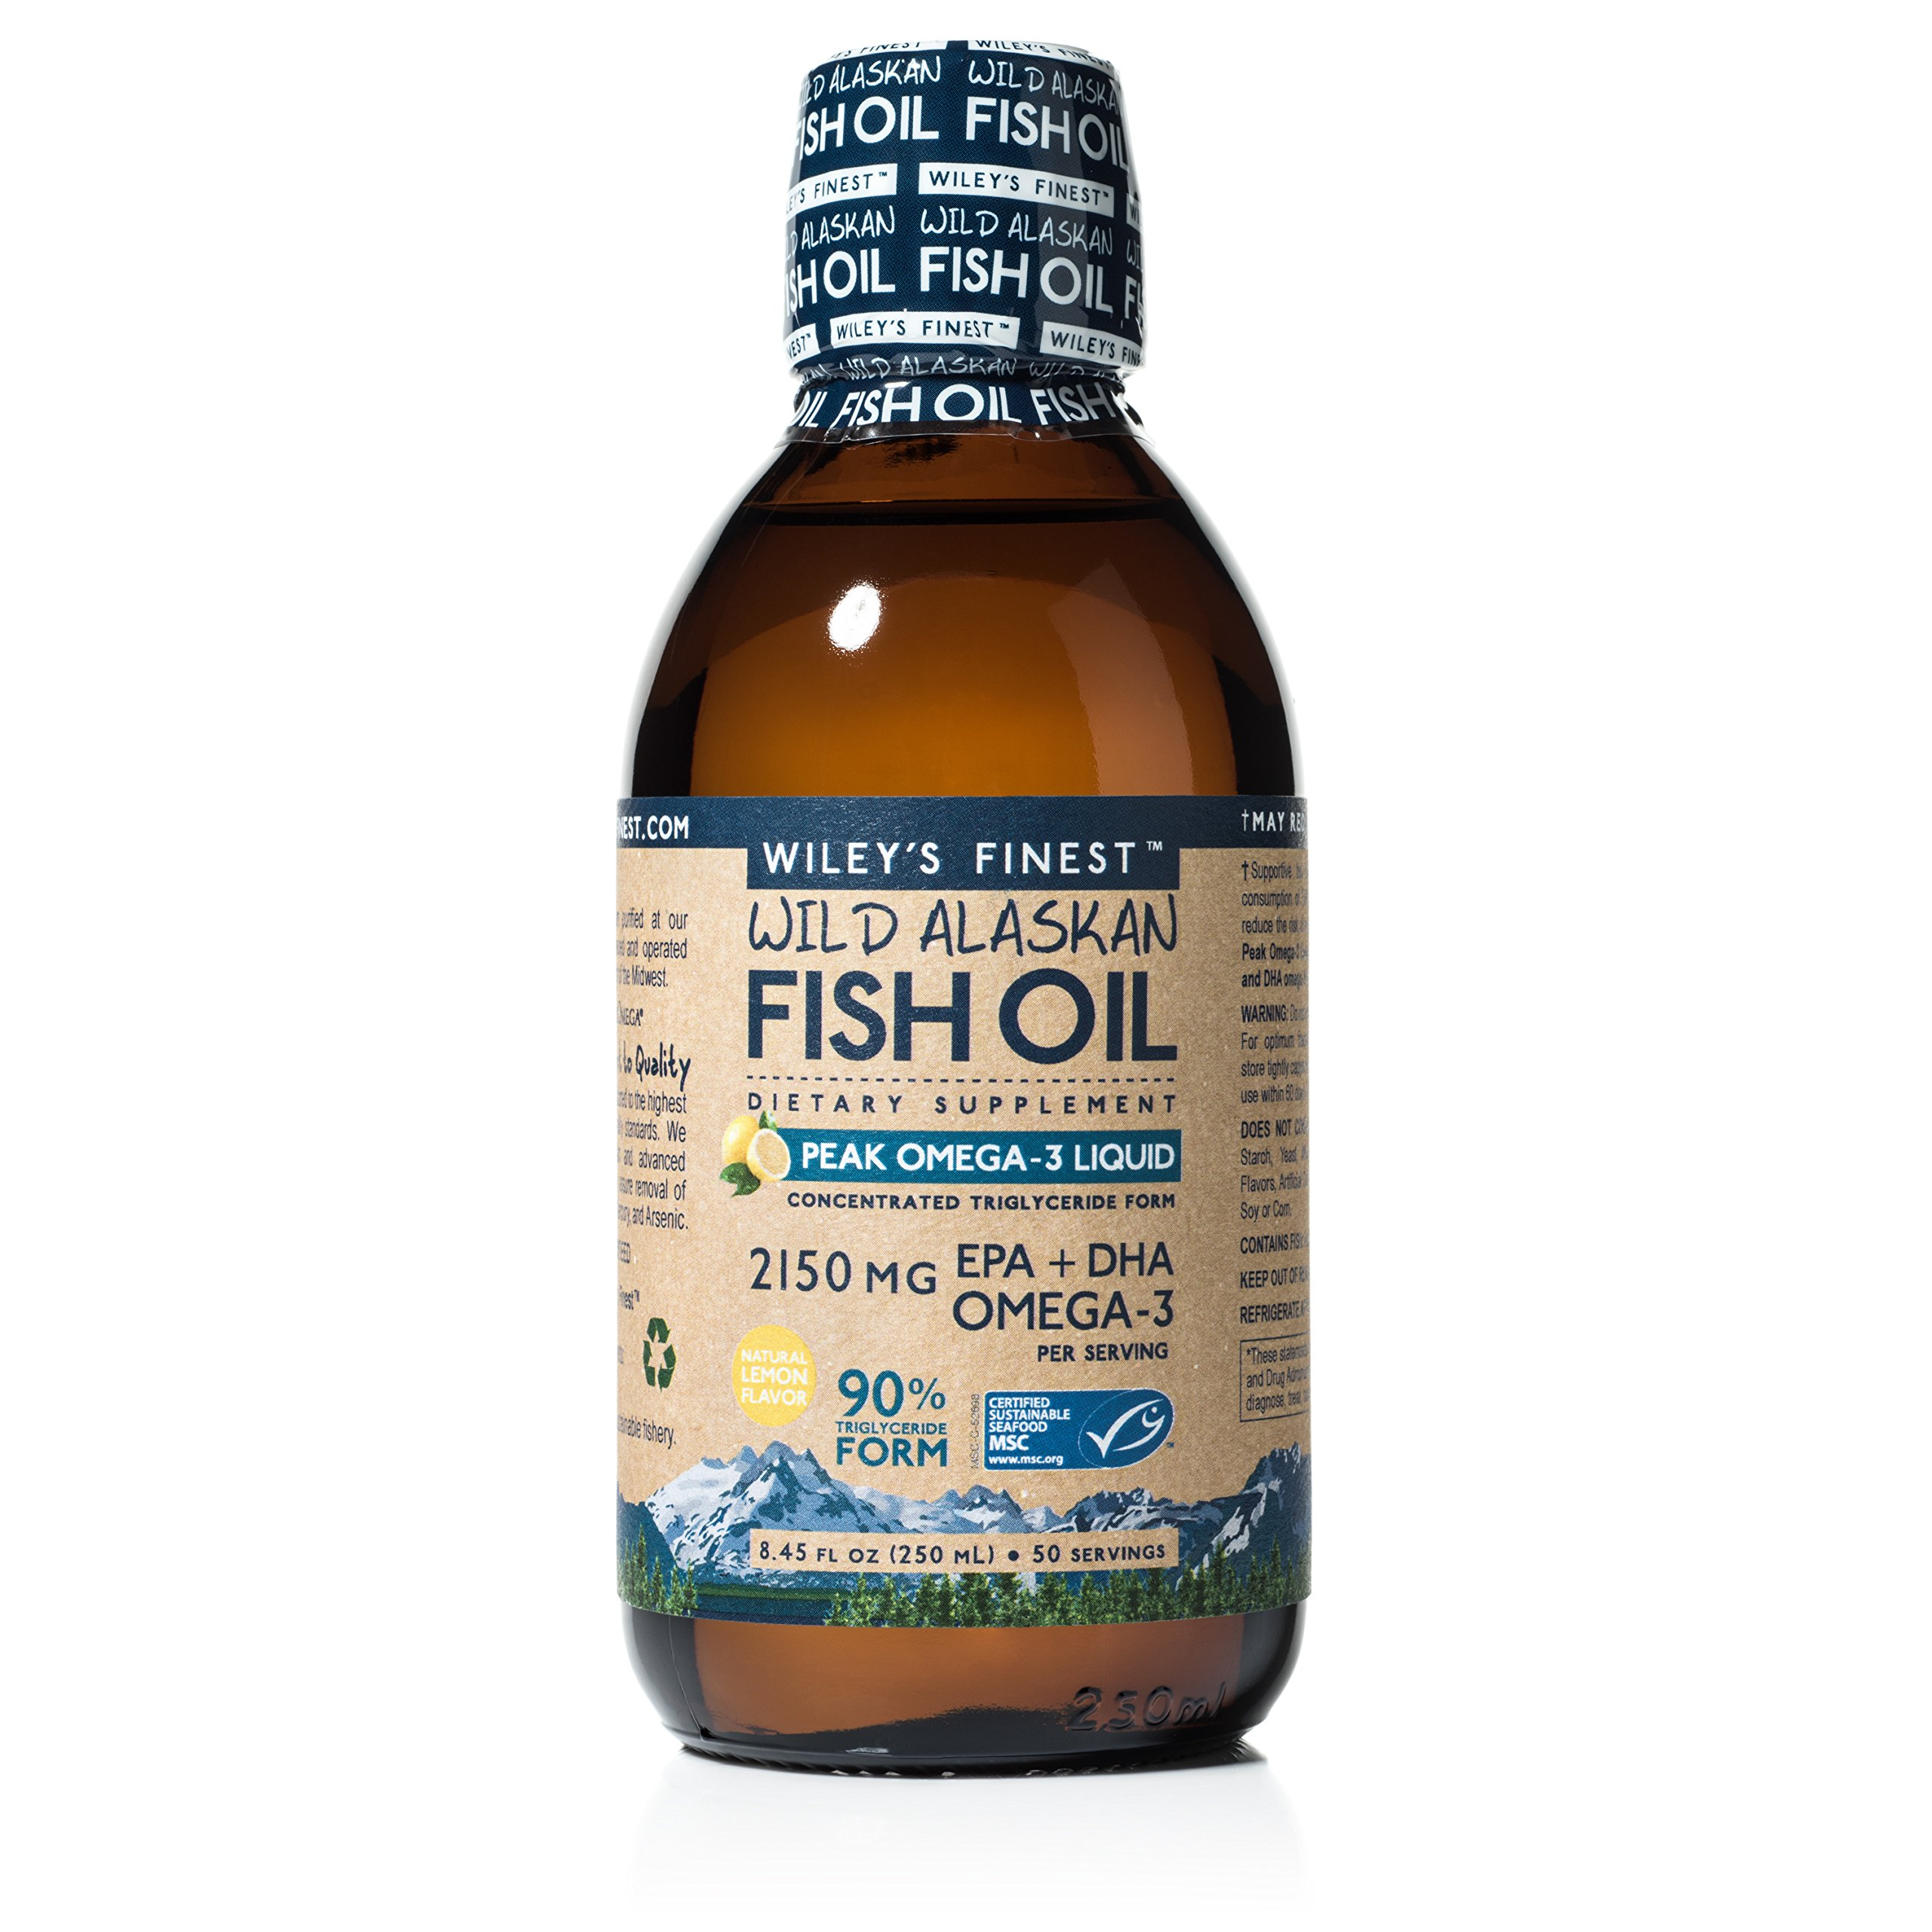 Wiley's Finest Peak Omega-3 Liquid 2150mg EPA + DHA Omega-3 Natural Wild Alaskan Fish Oil Supplement 50 Servings by Wiley's Finest